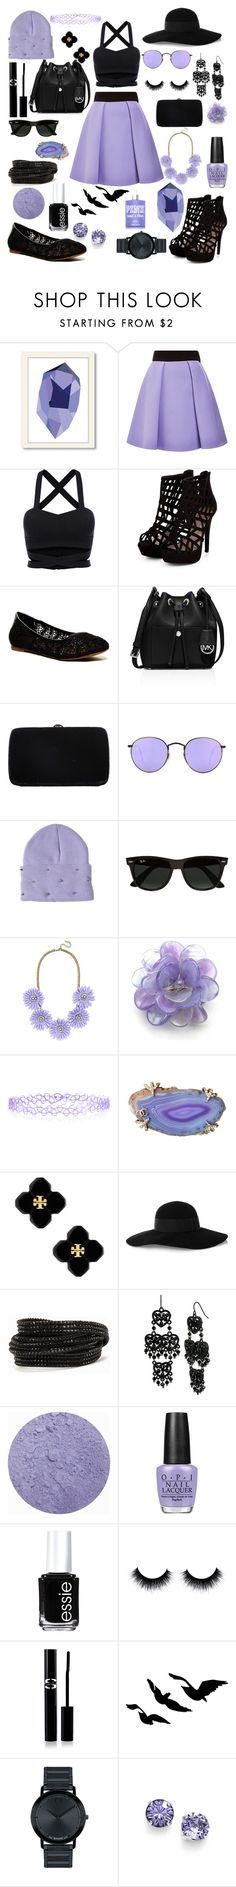 """""""Lilac; Casual vs Classy"""" by mkusler ❤ liked on Polyvore featuring Americanflat, FAUSTO PUGLISI, Lucky Brand, MICHAEL Michael Kors, Sergio Rossi, Ray-Ban, High Heels Suicide, BaubleBar, Chanel and Monsoon"""